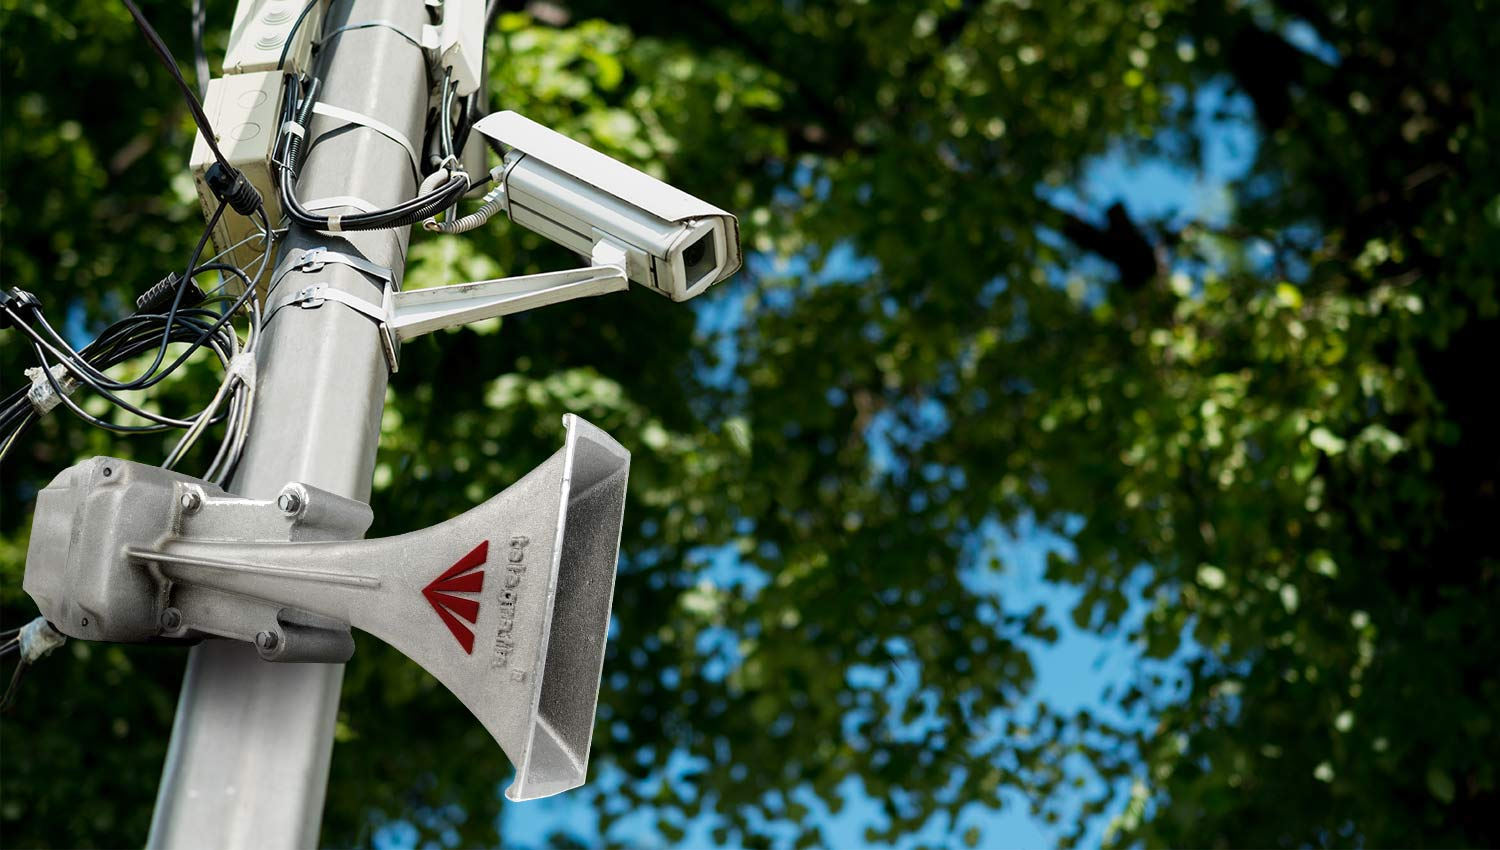 CCTV Combined with an Acoustic Warning and PA System